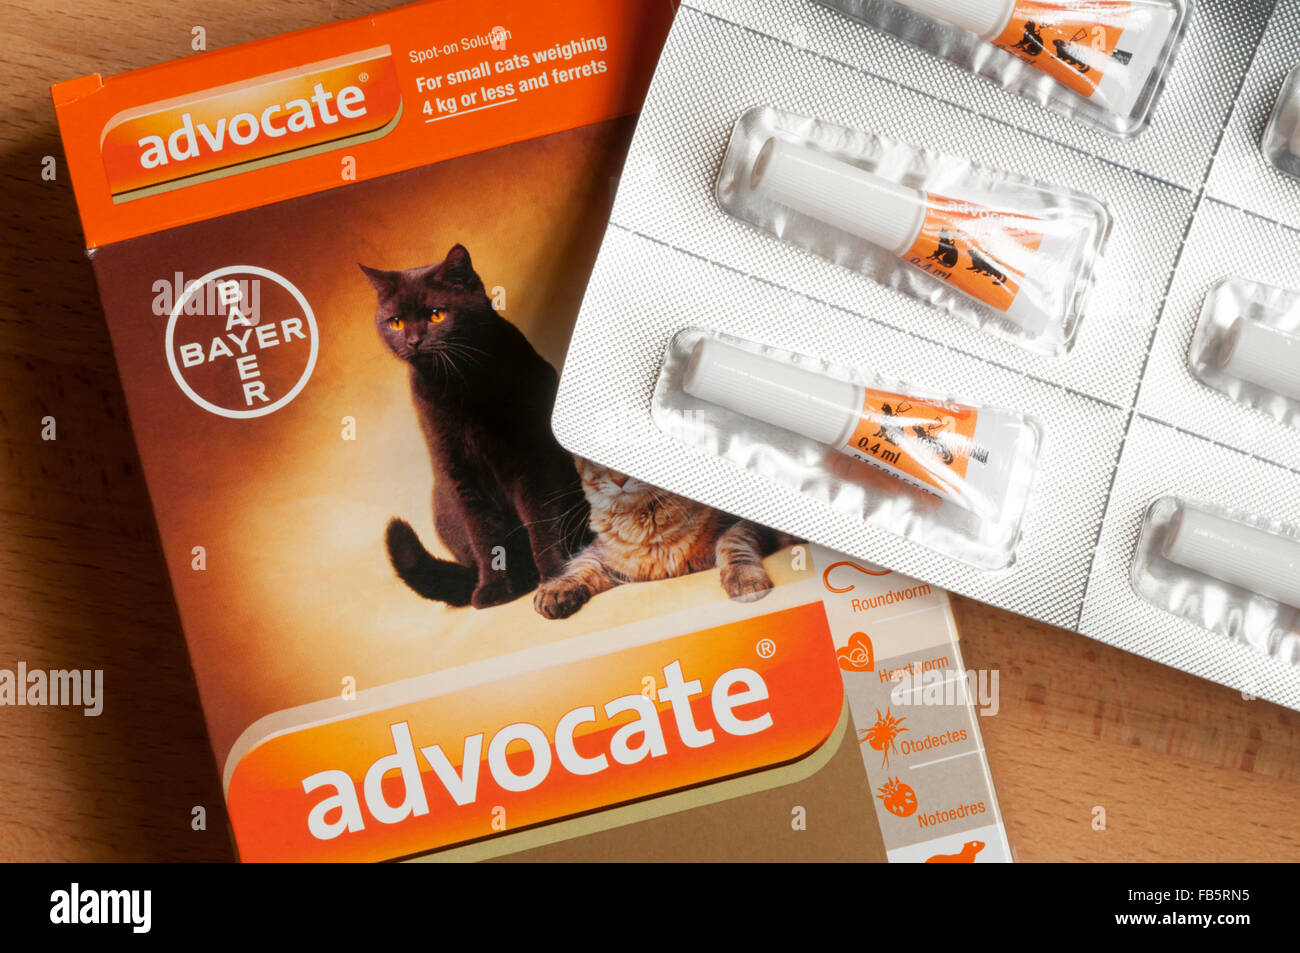 Advocate flea and worm treatment for small cats and ferrets. - Stock Image